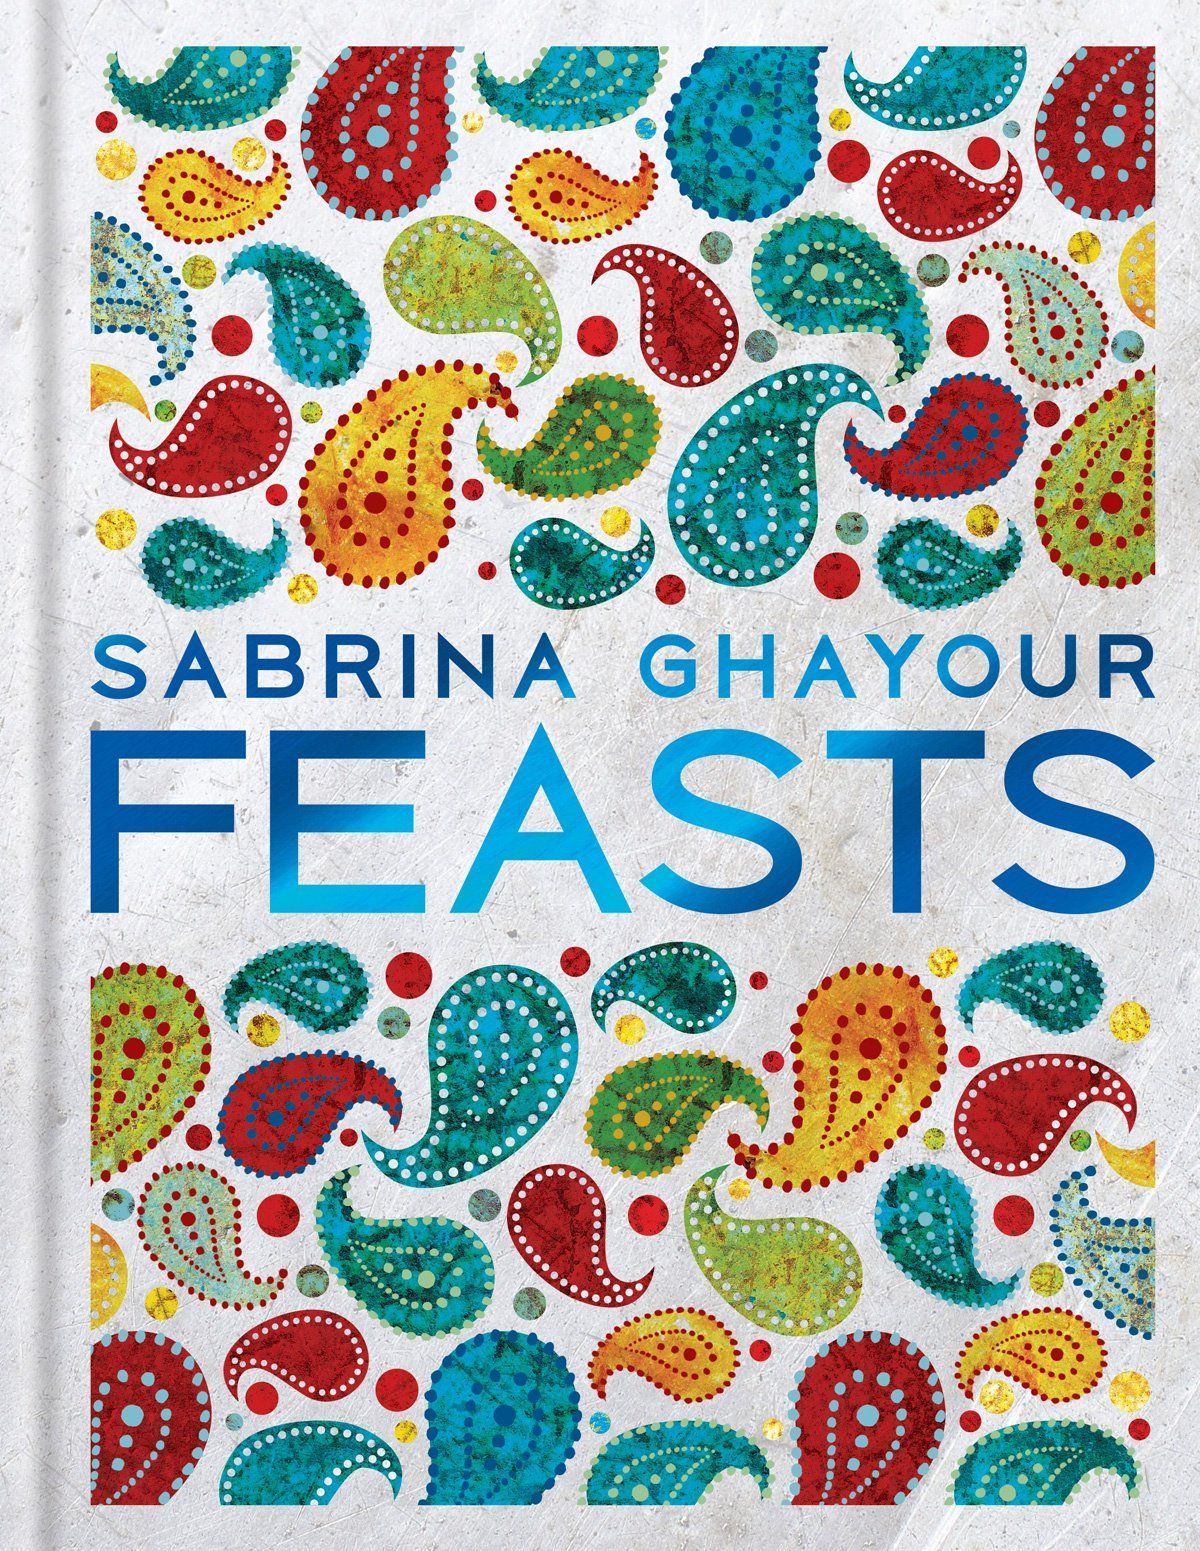 Feasts by Sabrina Ghayour: I am a huge fan of Sabrina Ghayour's and have been much looking forward to this, her third book. It is certainly the most beautiful she has produced yet, and is - as her previous titles would lead one to expect - full of gorgeously inspiring and reassuringly do-able recipes. Every page just belts out flavour! And I have chosen her Pomegranate and Aubergine Salad for you, with a very glad heart.